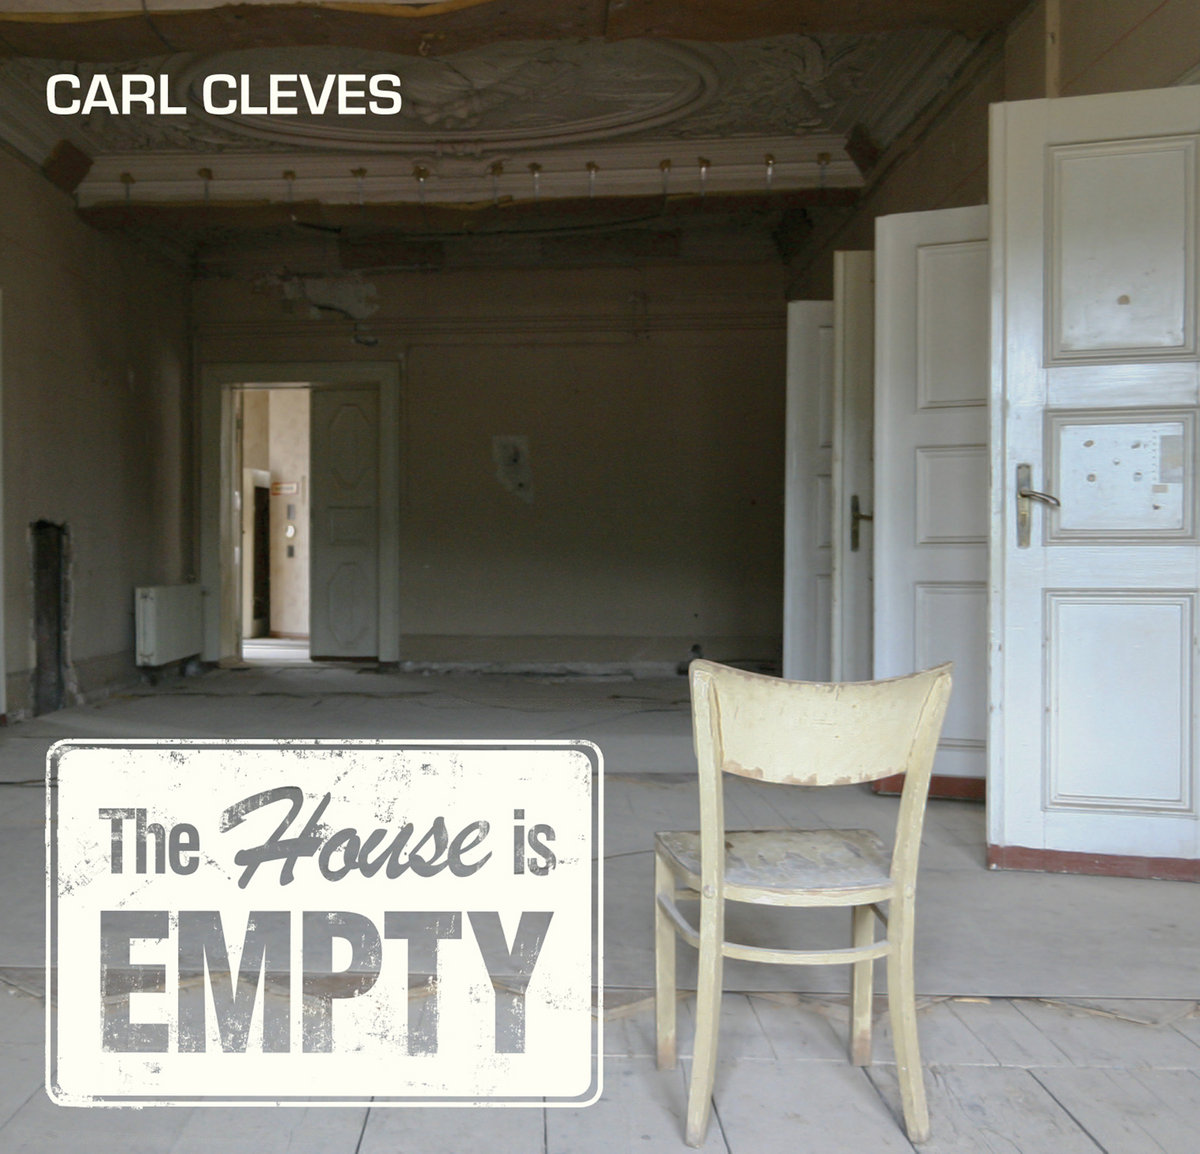 Outstanding The House Is Empty Carl Cleves Home Interior And Landscaping Ologienasavecom